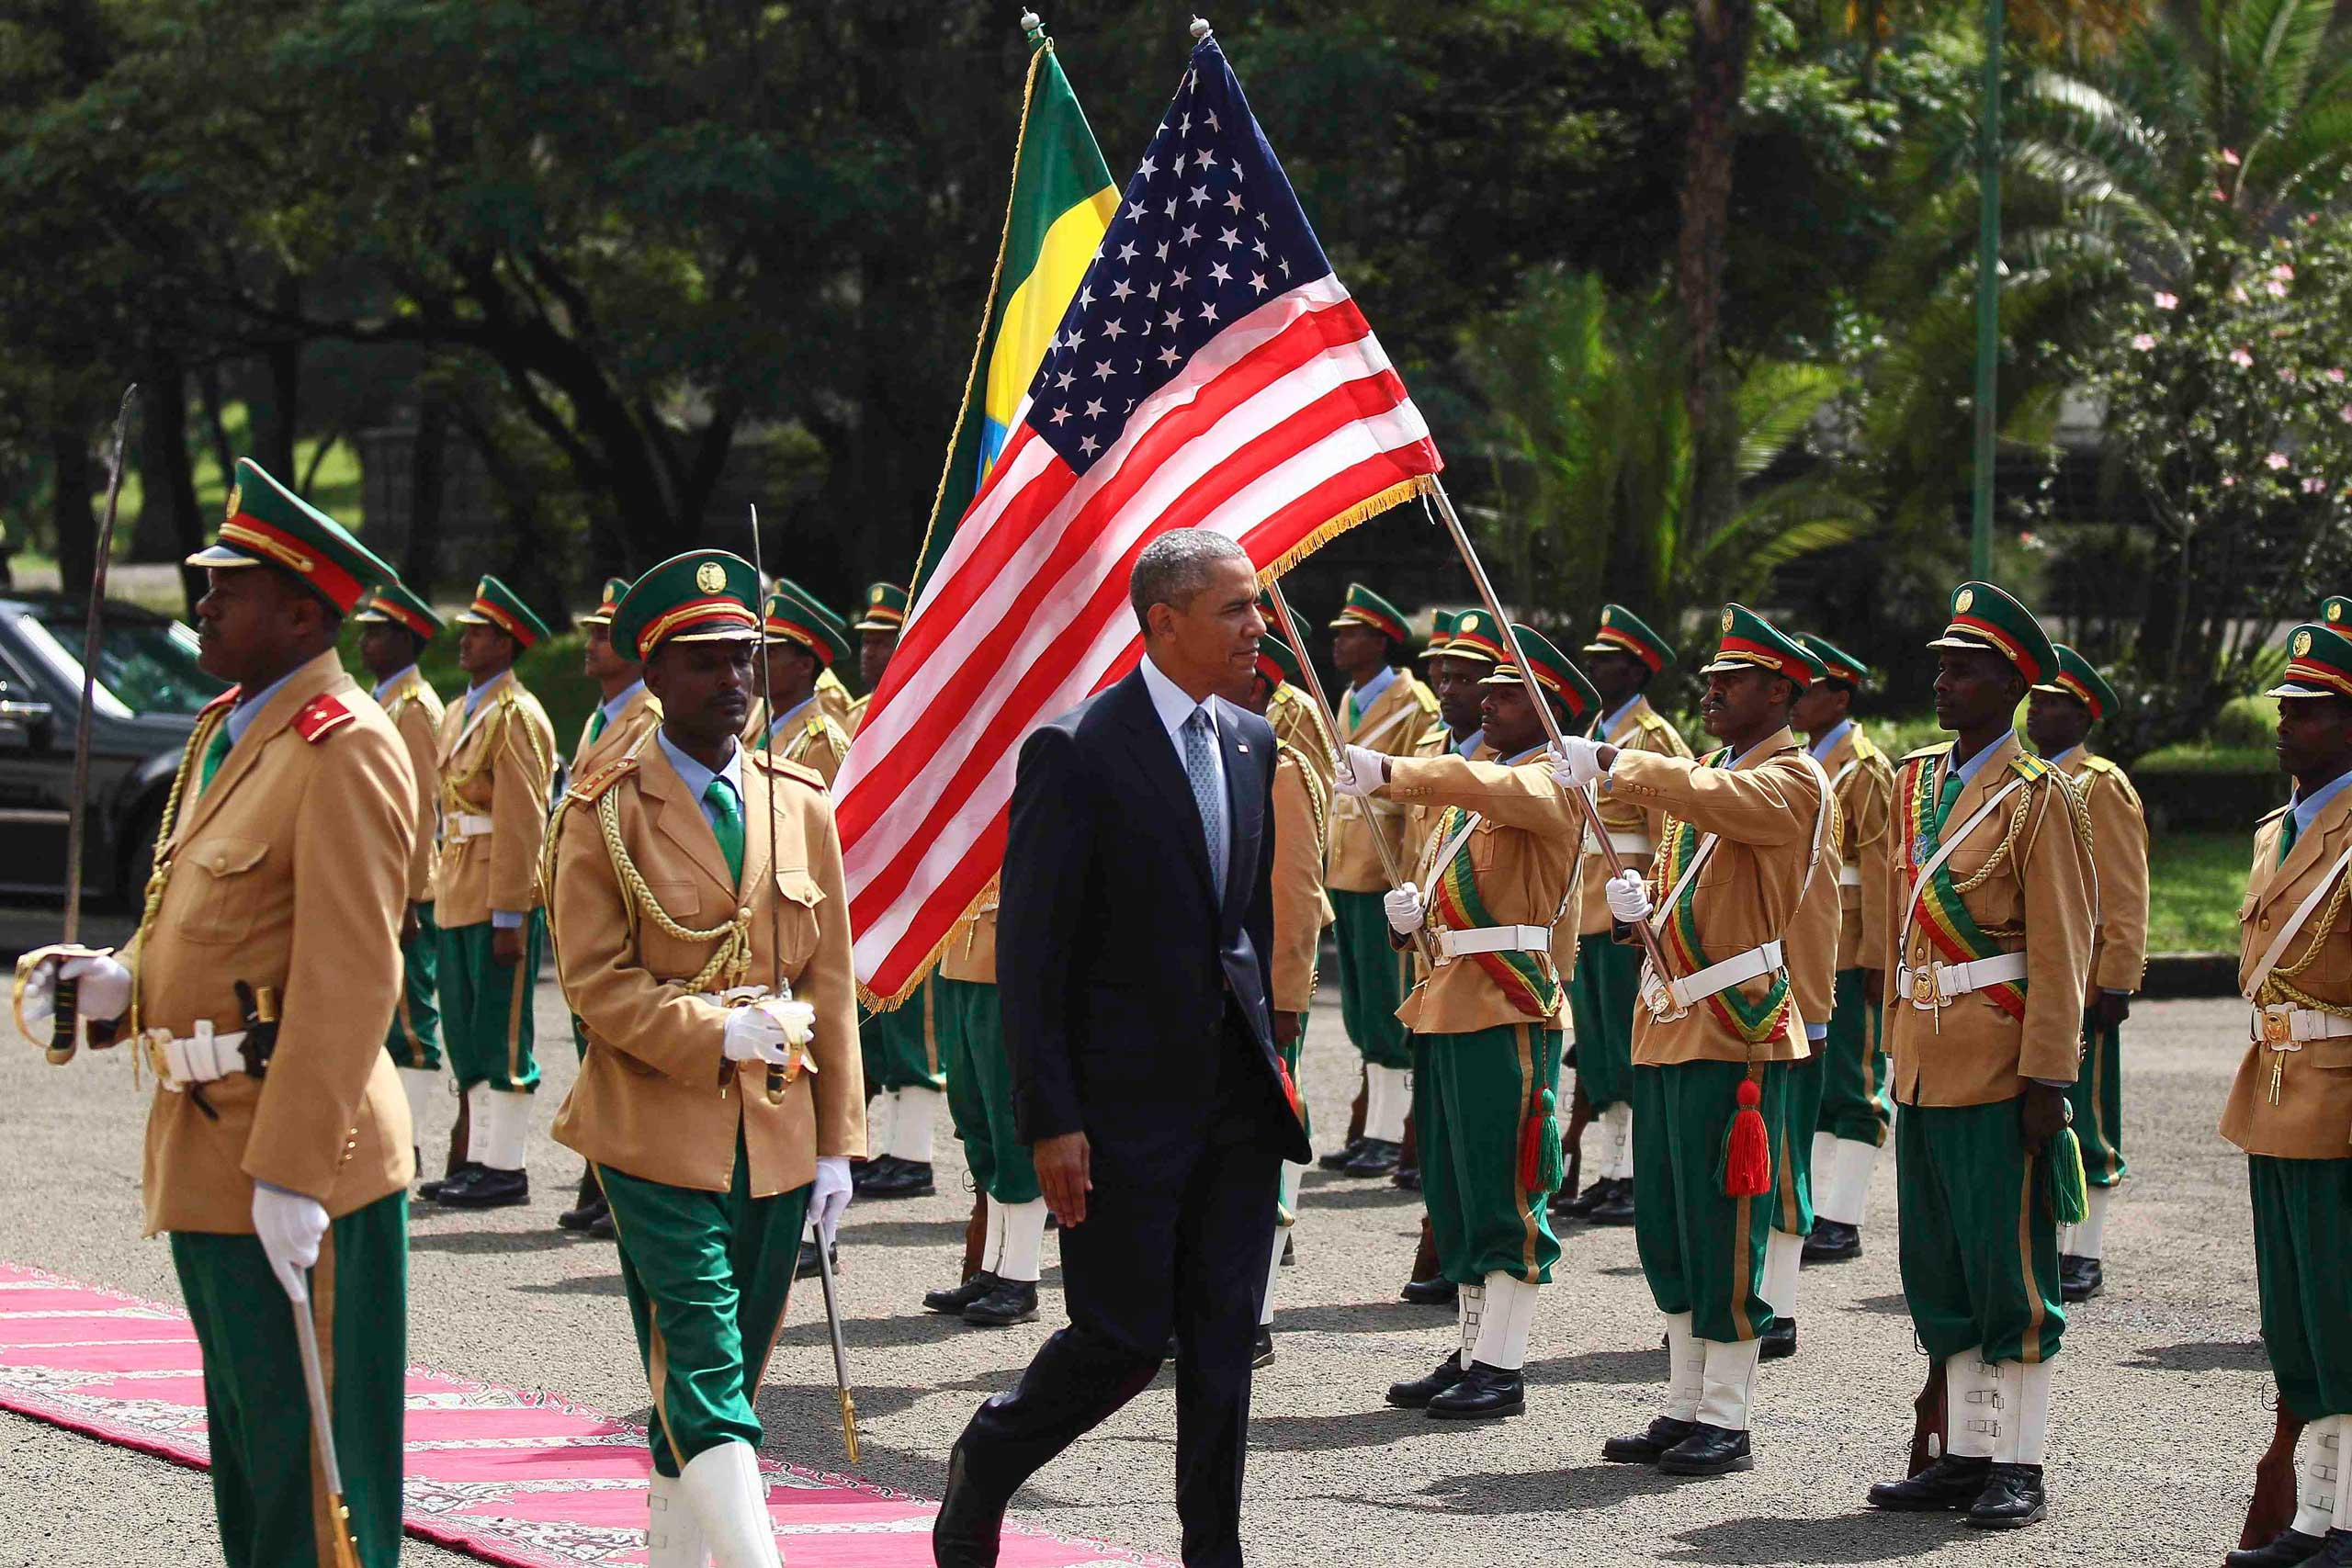 President Barack Obama reviews a marching band during a welcome ceremony at the National Palace in Addis Ababa on July 27, 2015.